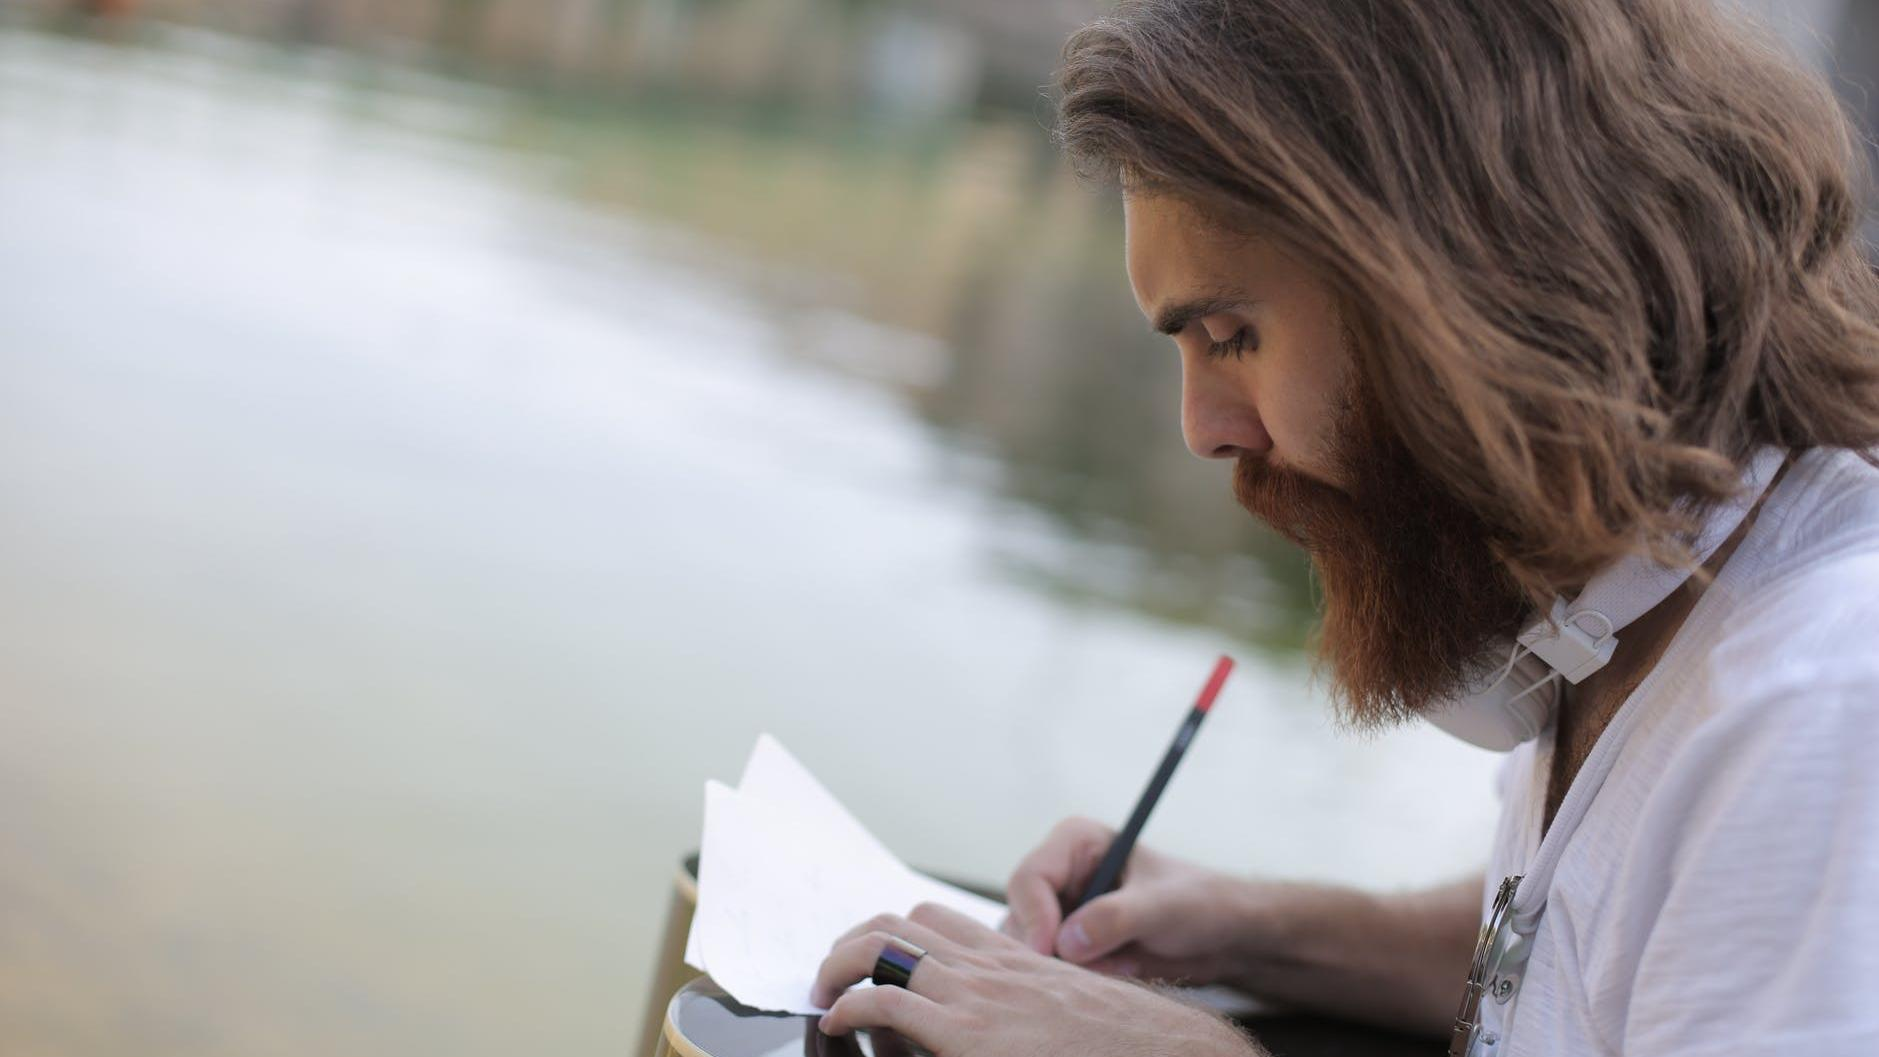 A man writing on a piece of paper